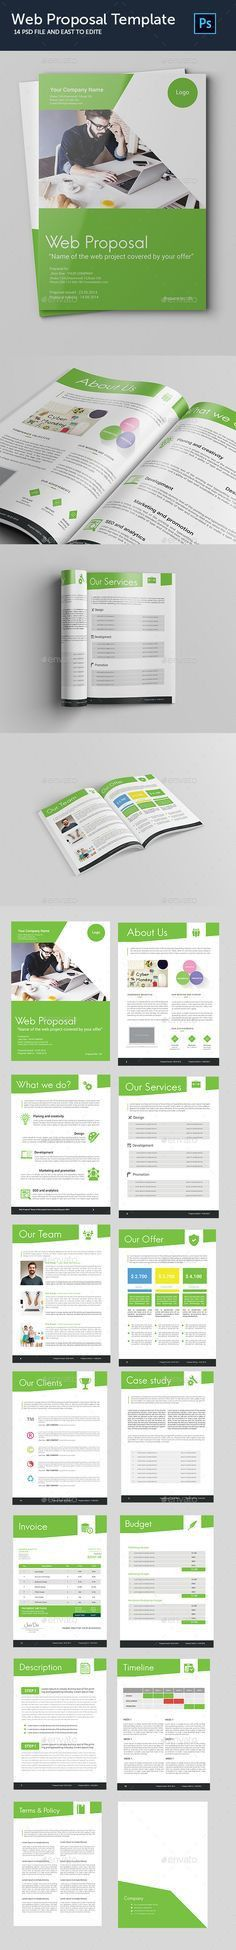 Web Application Design Proposal Template | Proposal templates ...